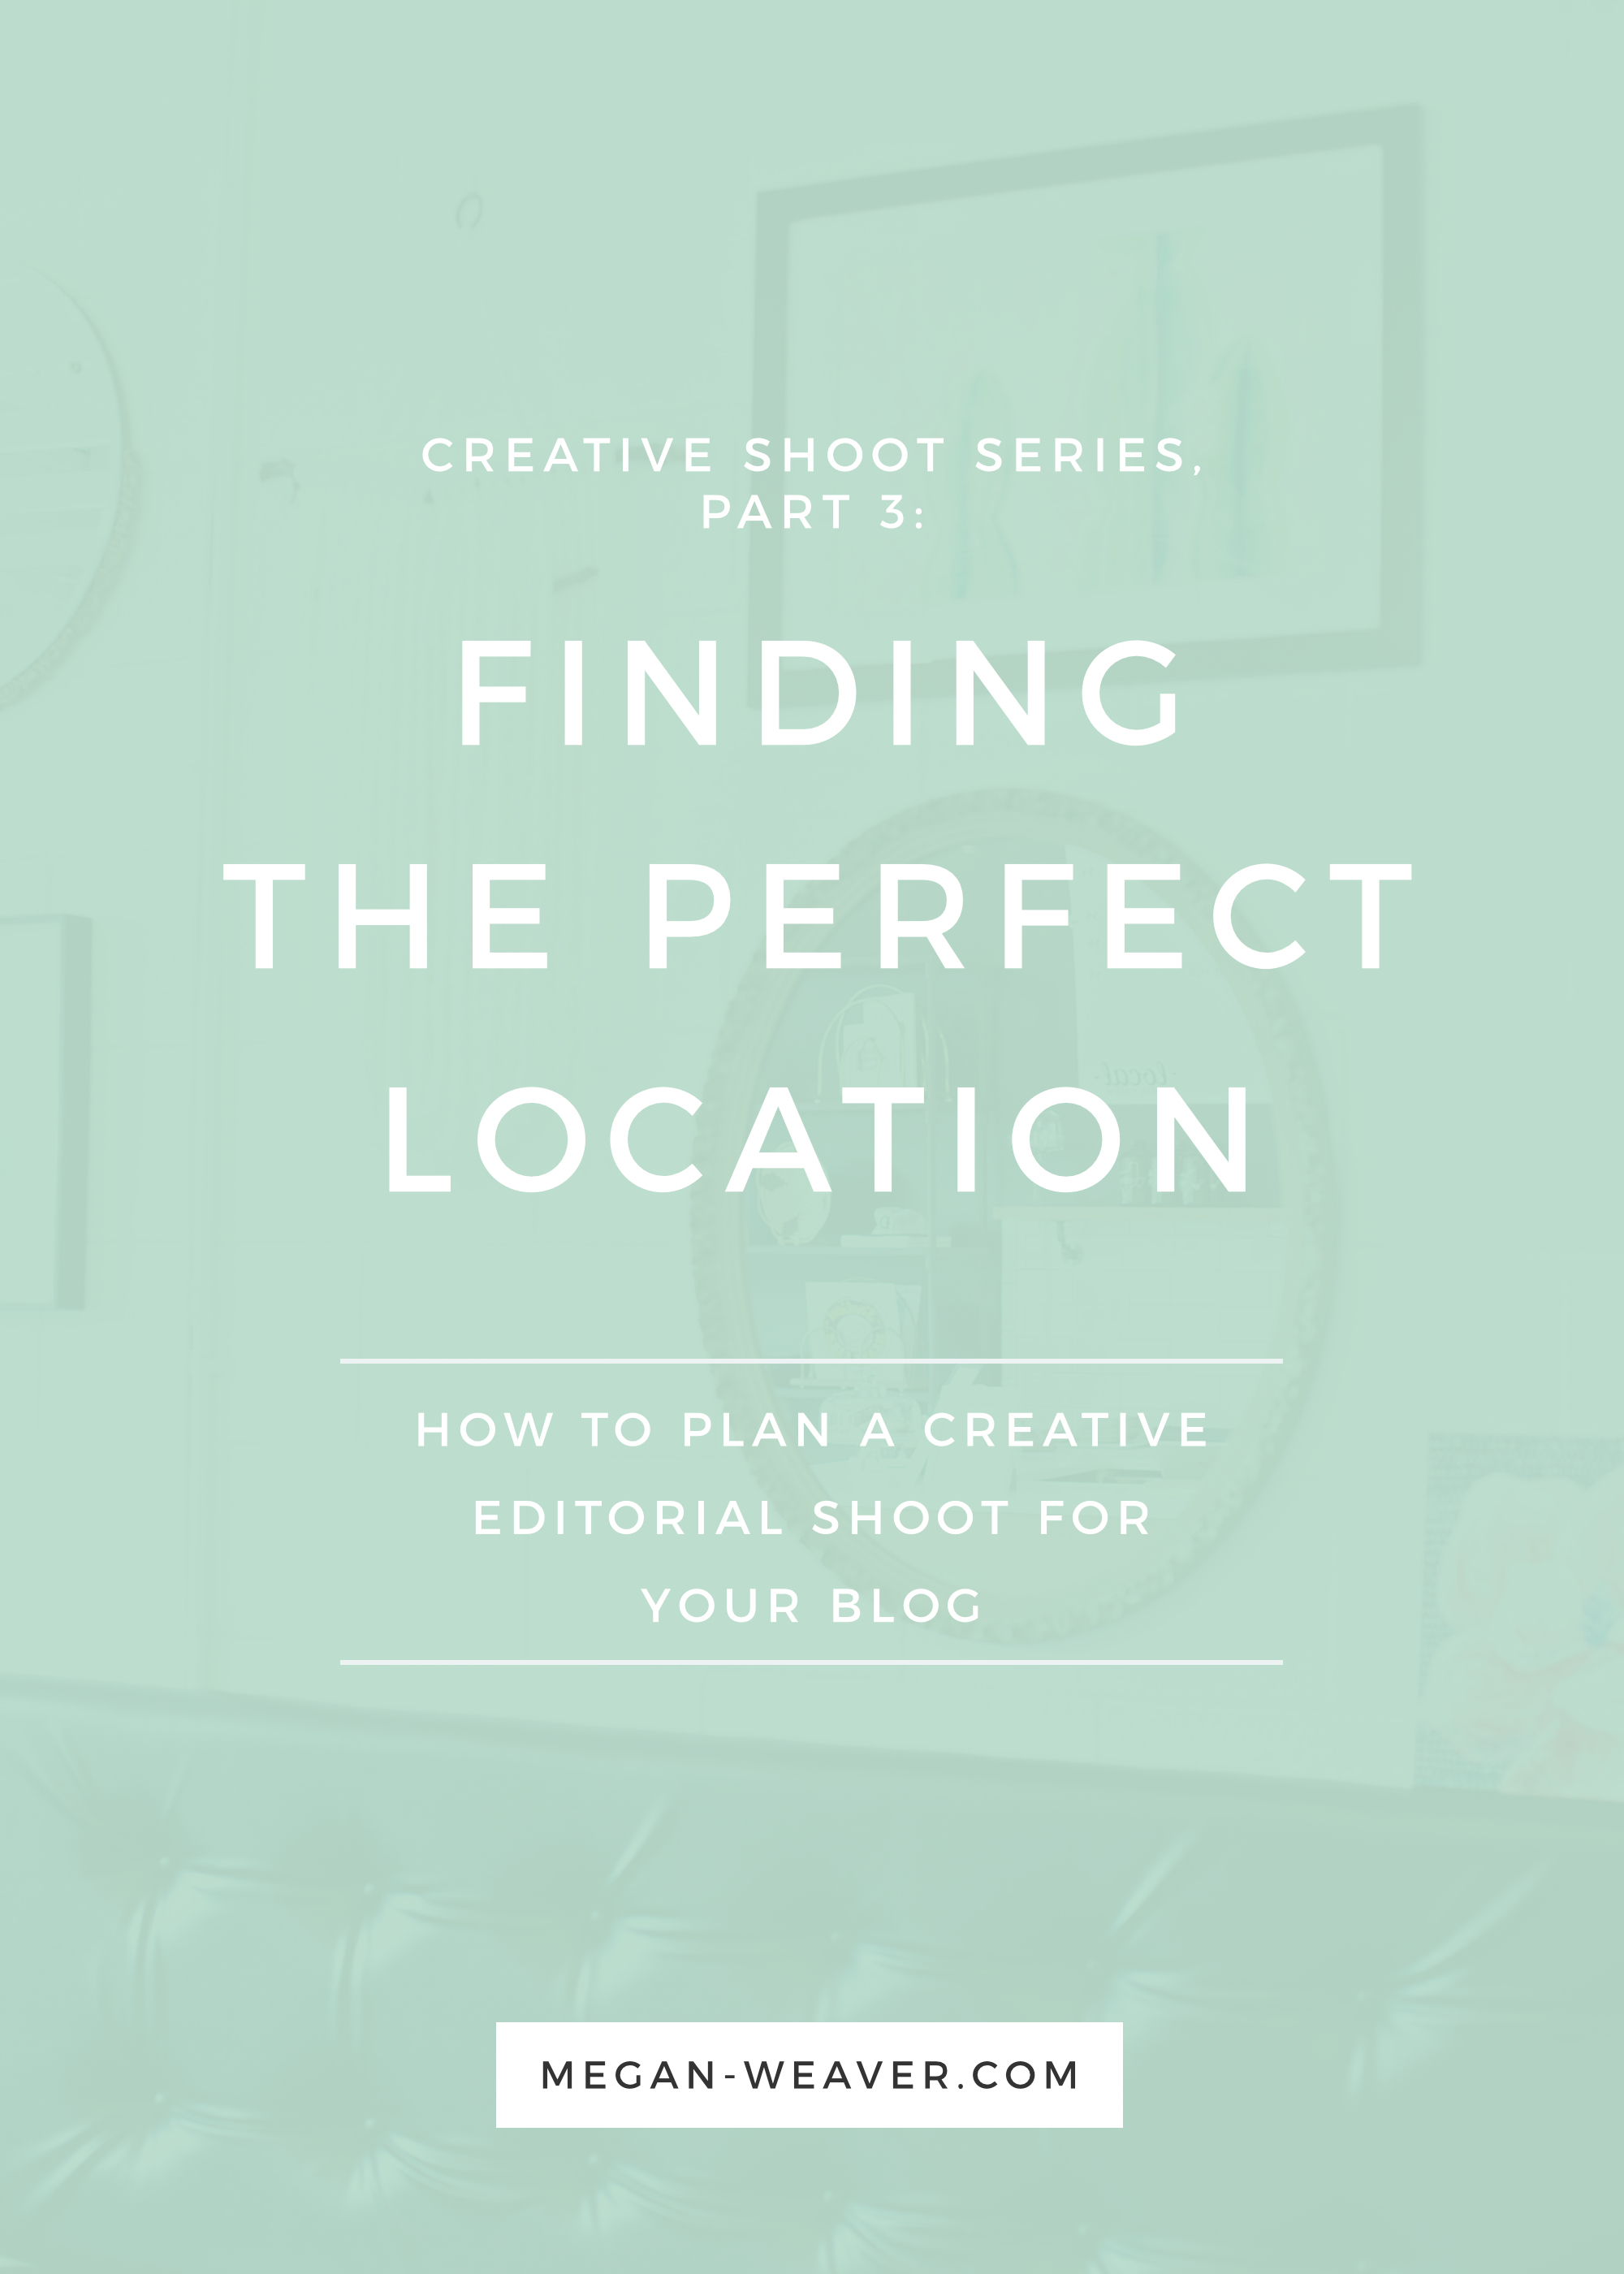 When you're planning a creative editorial photoshoot, one of the most time-consuming parts of the process is finding a location! On Part 3 of our Creative Shoot Series, we'll walk you through finding — and booking — the perfect location for your shoot.